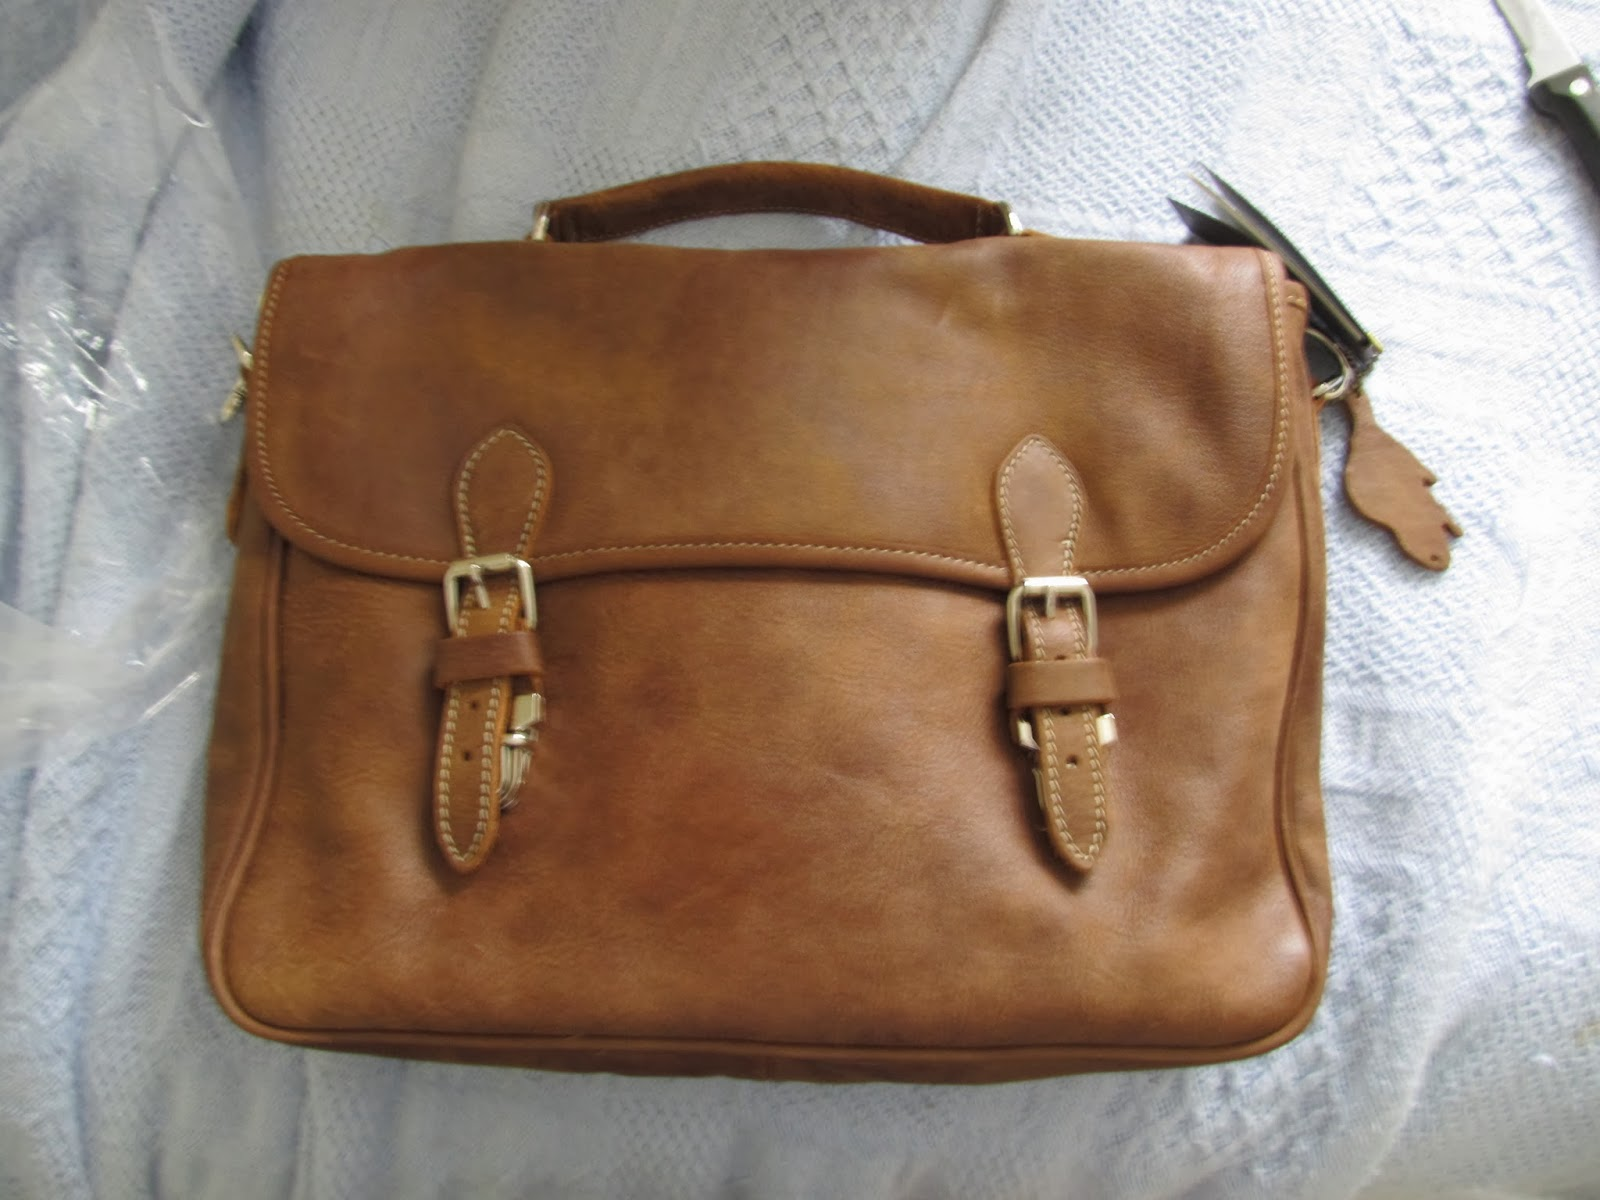 80e17ff3254a Roots Canada  the most underrated leather goods... (and customer service)